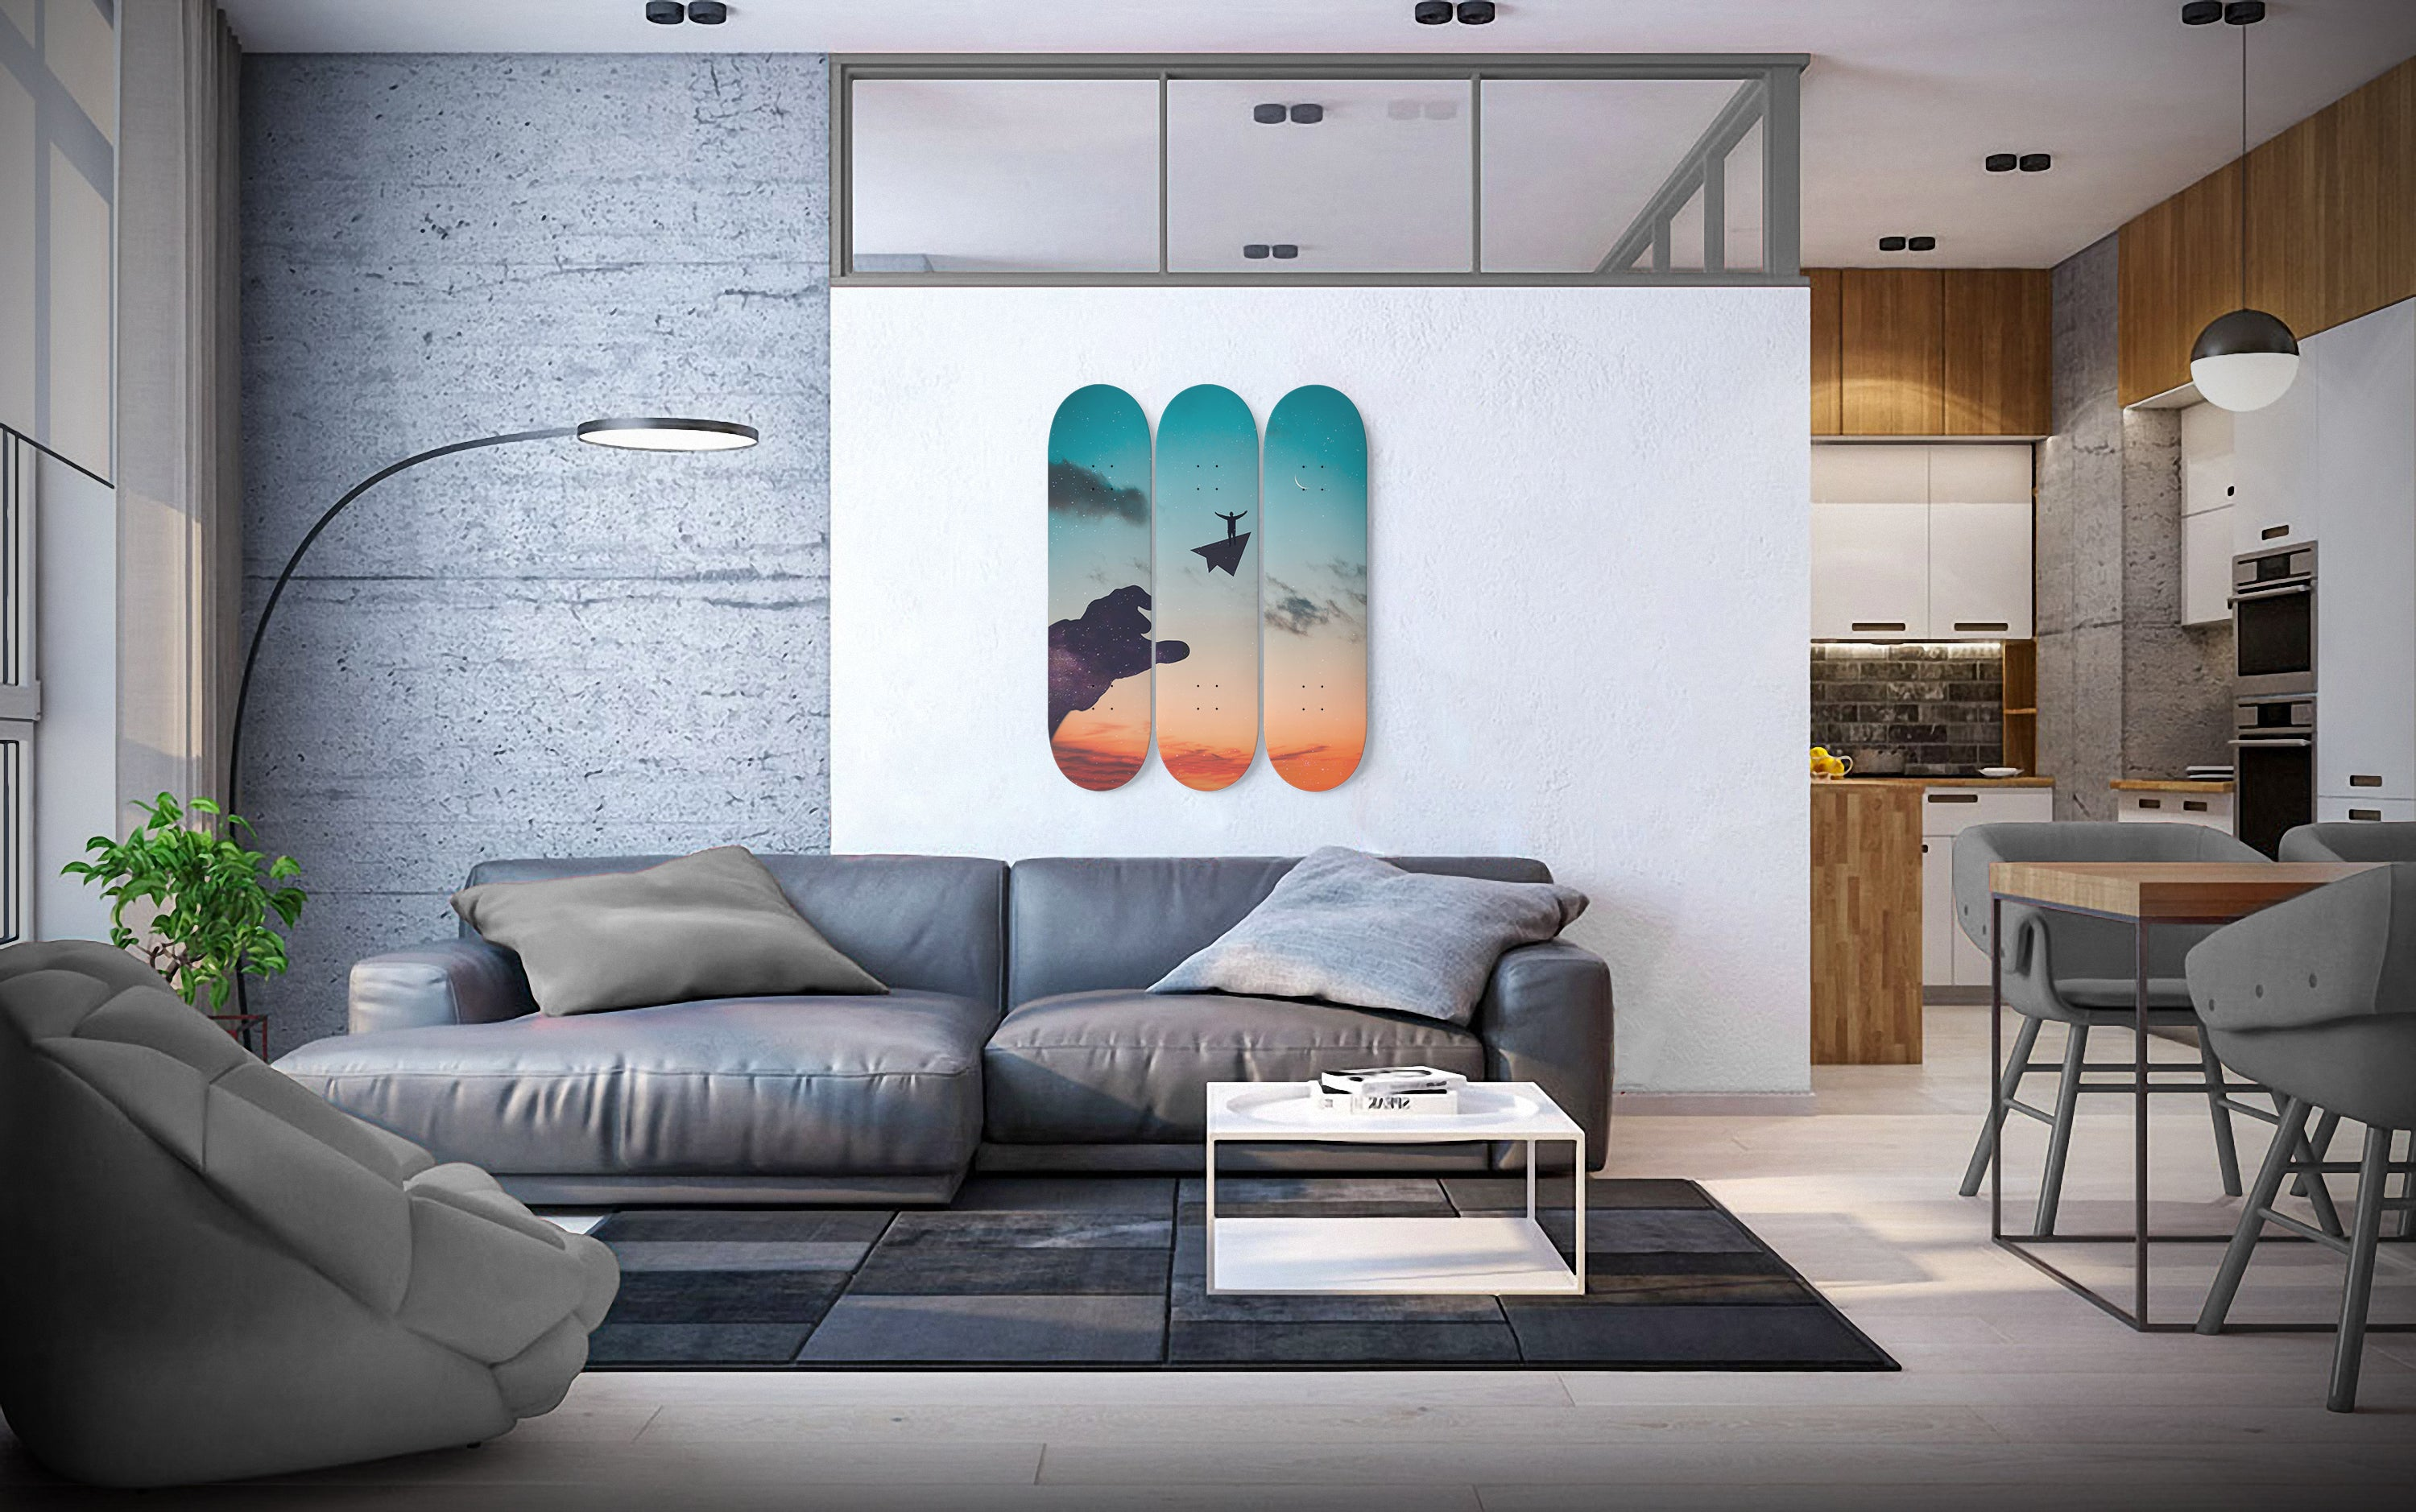 Let the Dream Fly - 3 Piece Skateboard Wall Art hanging on the wall in the living room